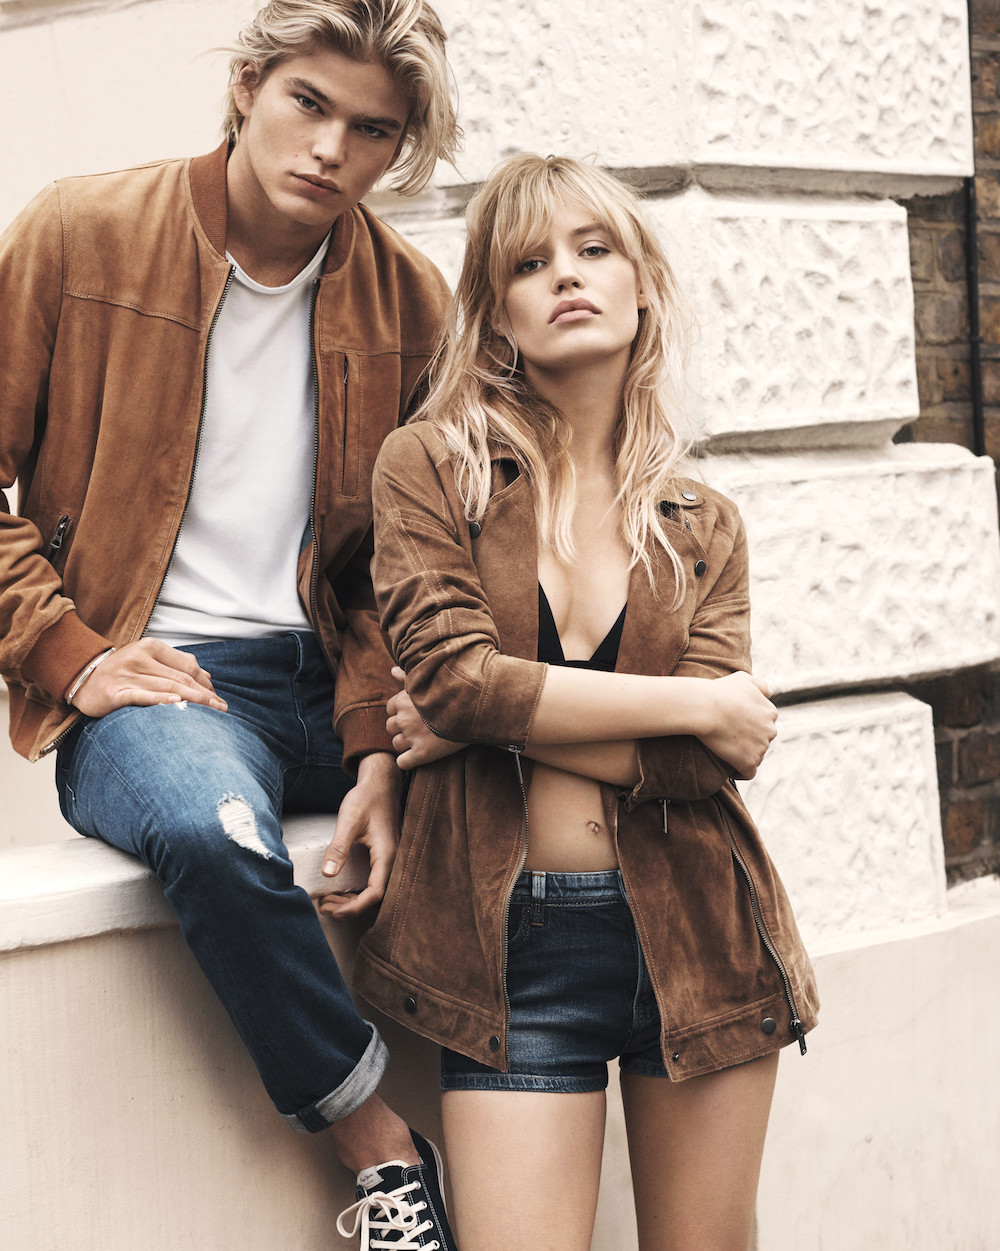 pepe-jeans-new-campain-ss-2017-walk-this-way-Georgia -May-Jagger-Jordan-Barrett-folkr-01